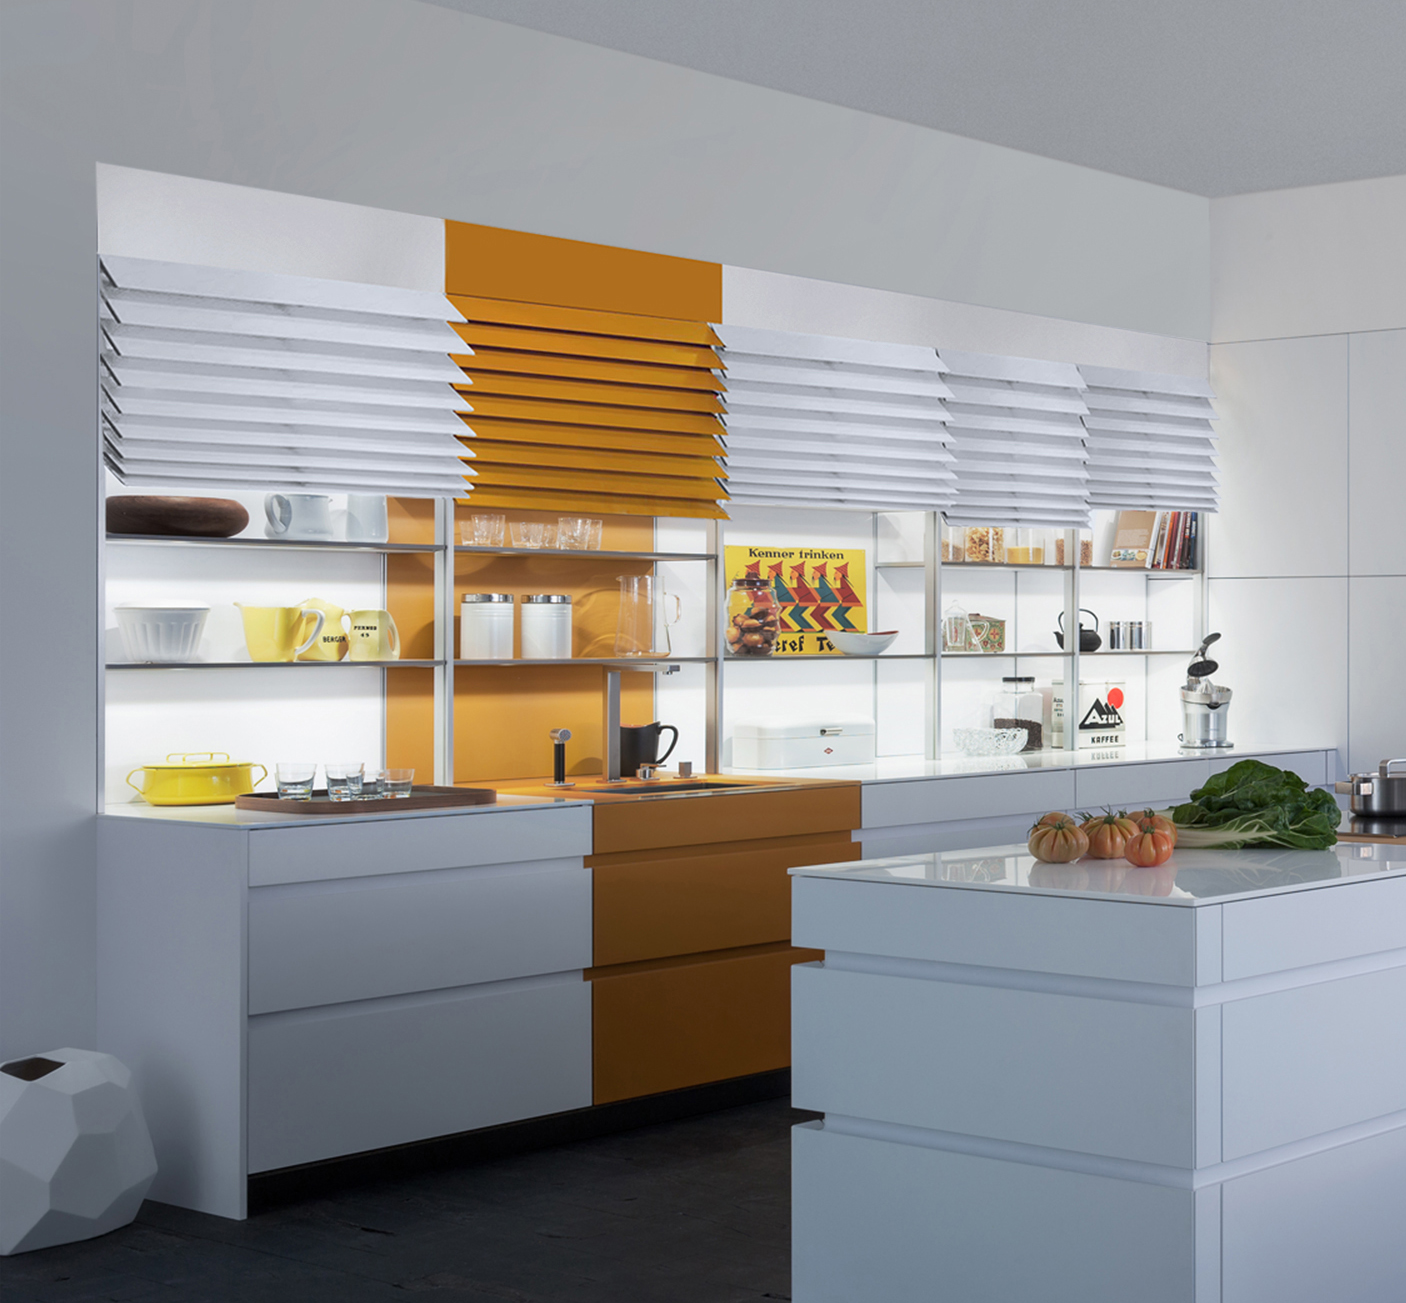 Living kitchens creating a seamless space q360 blog for Kitchen ideas edinburgh